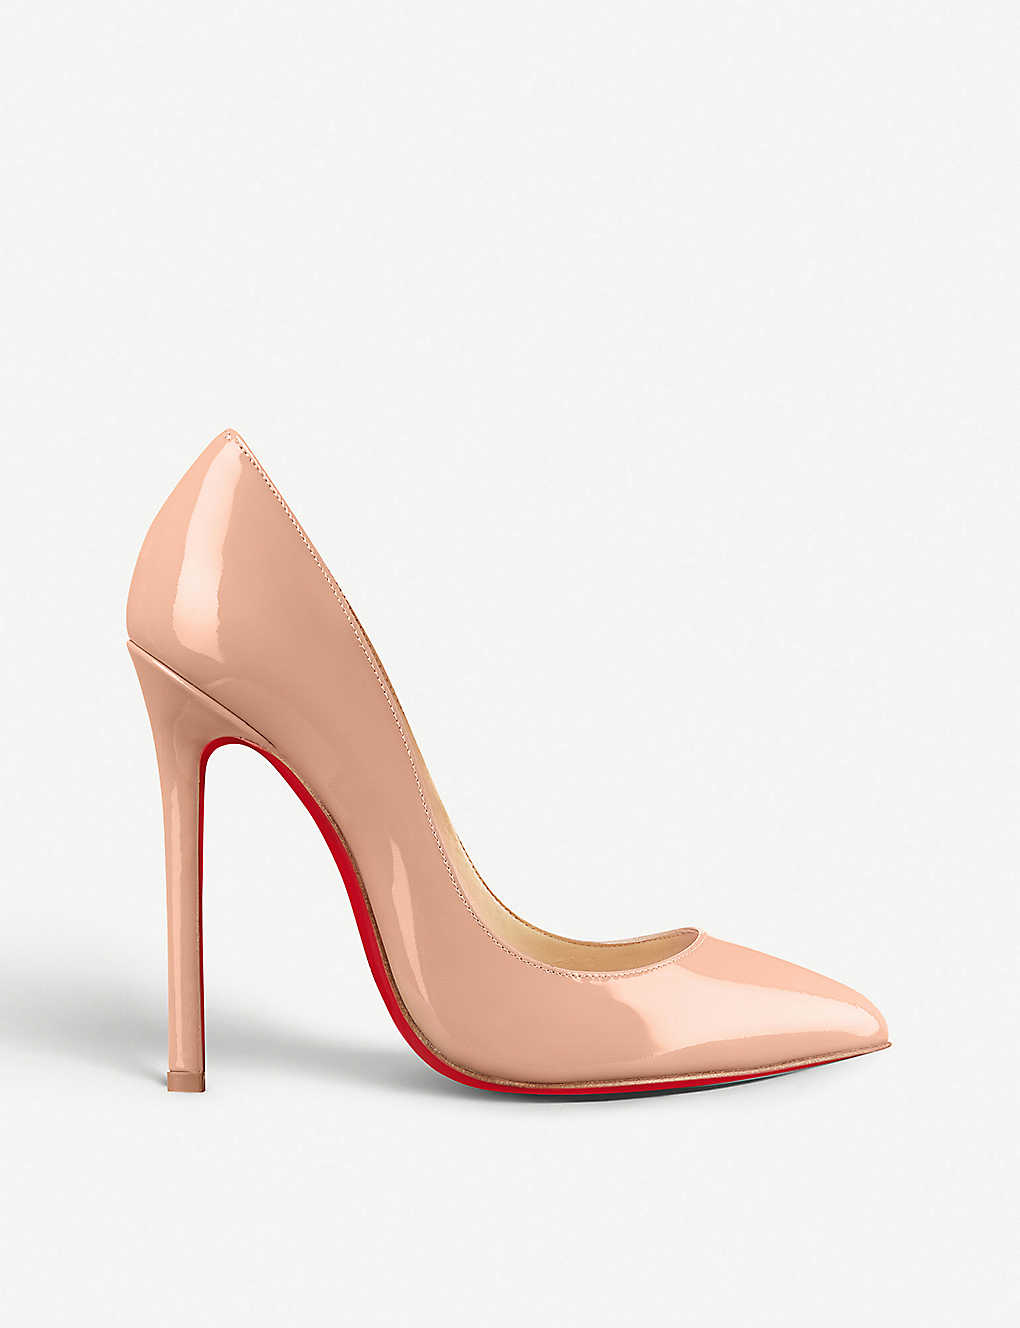 2d8e22a523a8 CHRISTIAN LOUBOUTIN - Pigalle 120 patent calf